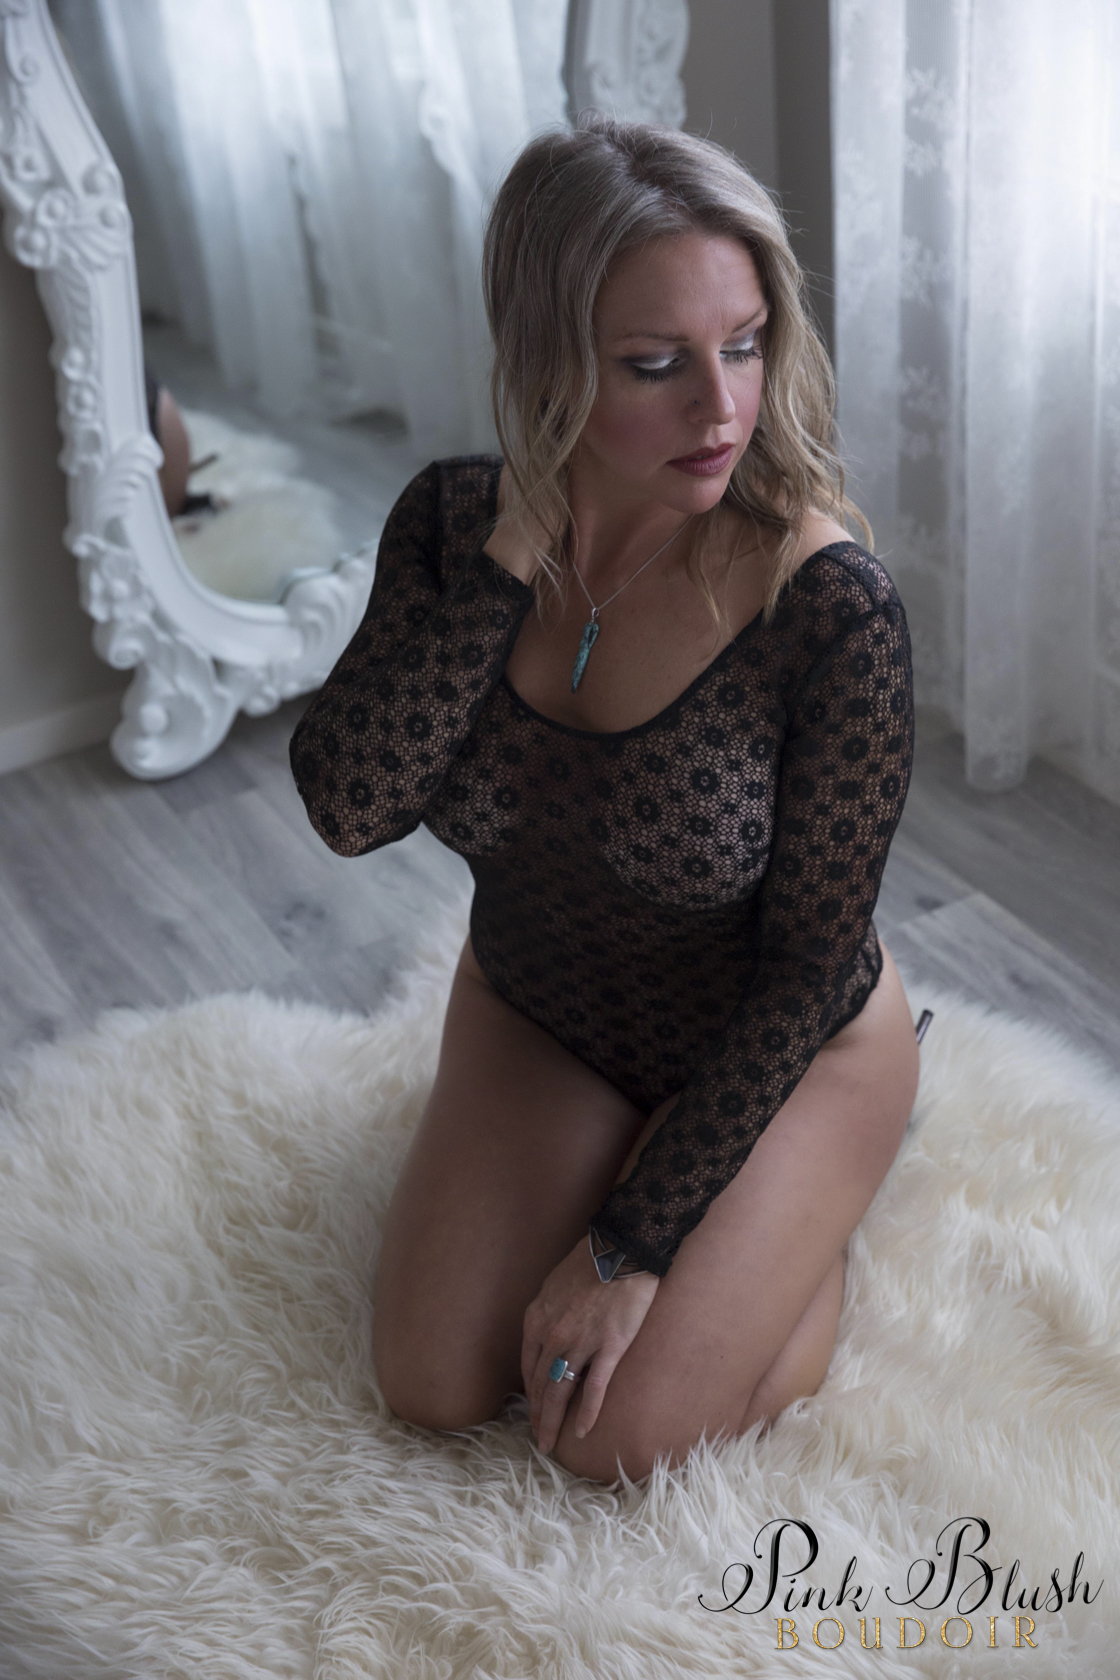 boudoir photos, a woman in a longsleeved lace body suit on a white rug